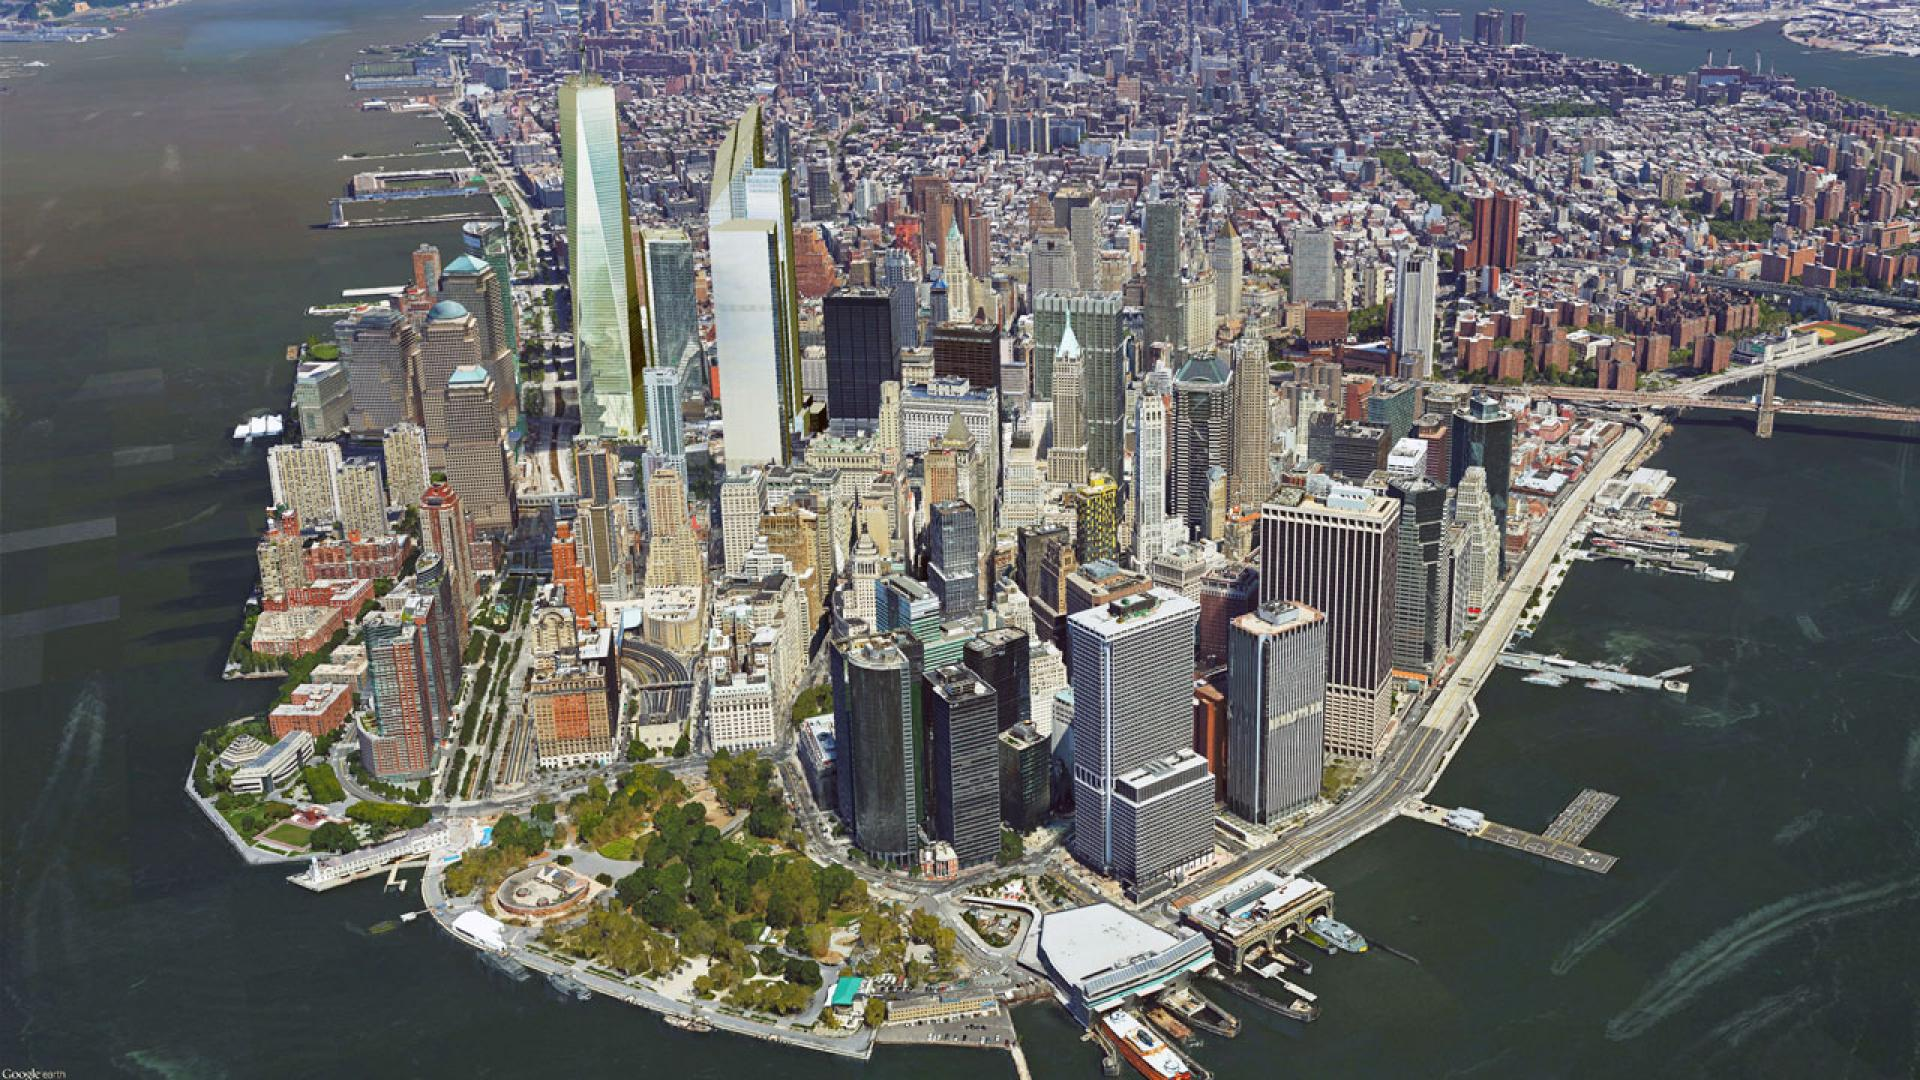 new york by gehry 8 spruce street nyc rental apartments new york by gehry 8 spruce street aerial imagery building